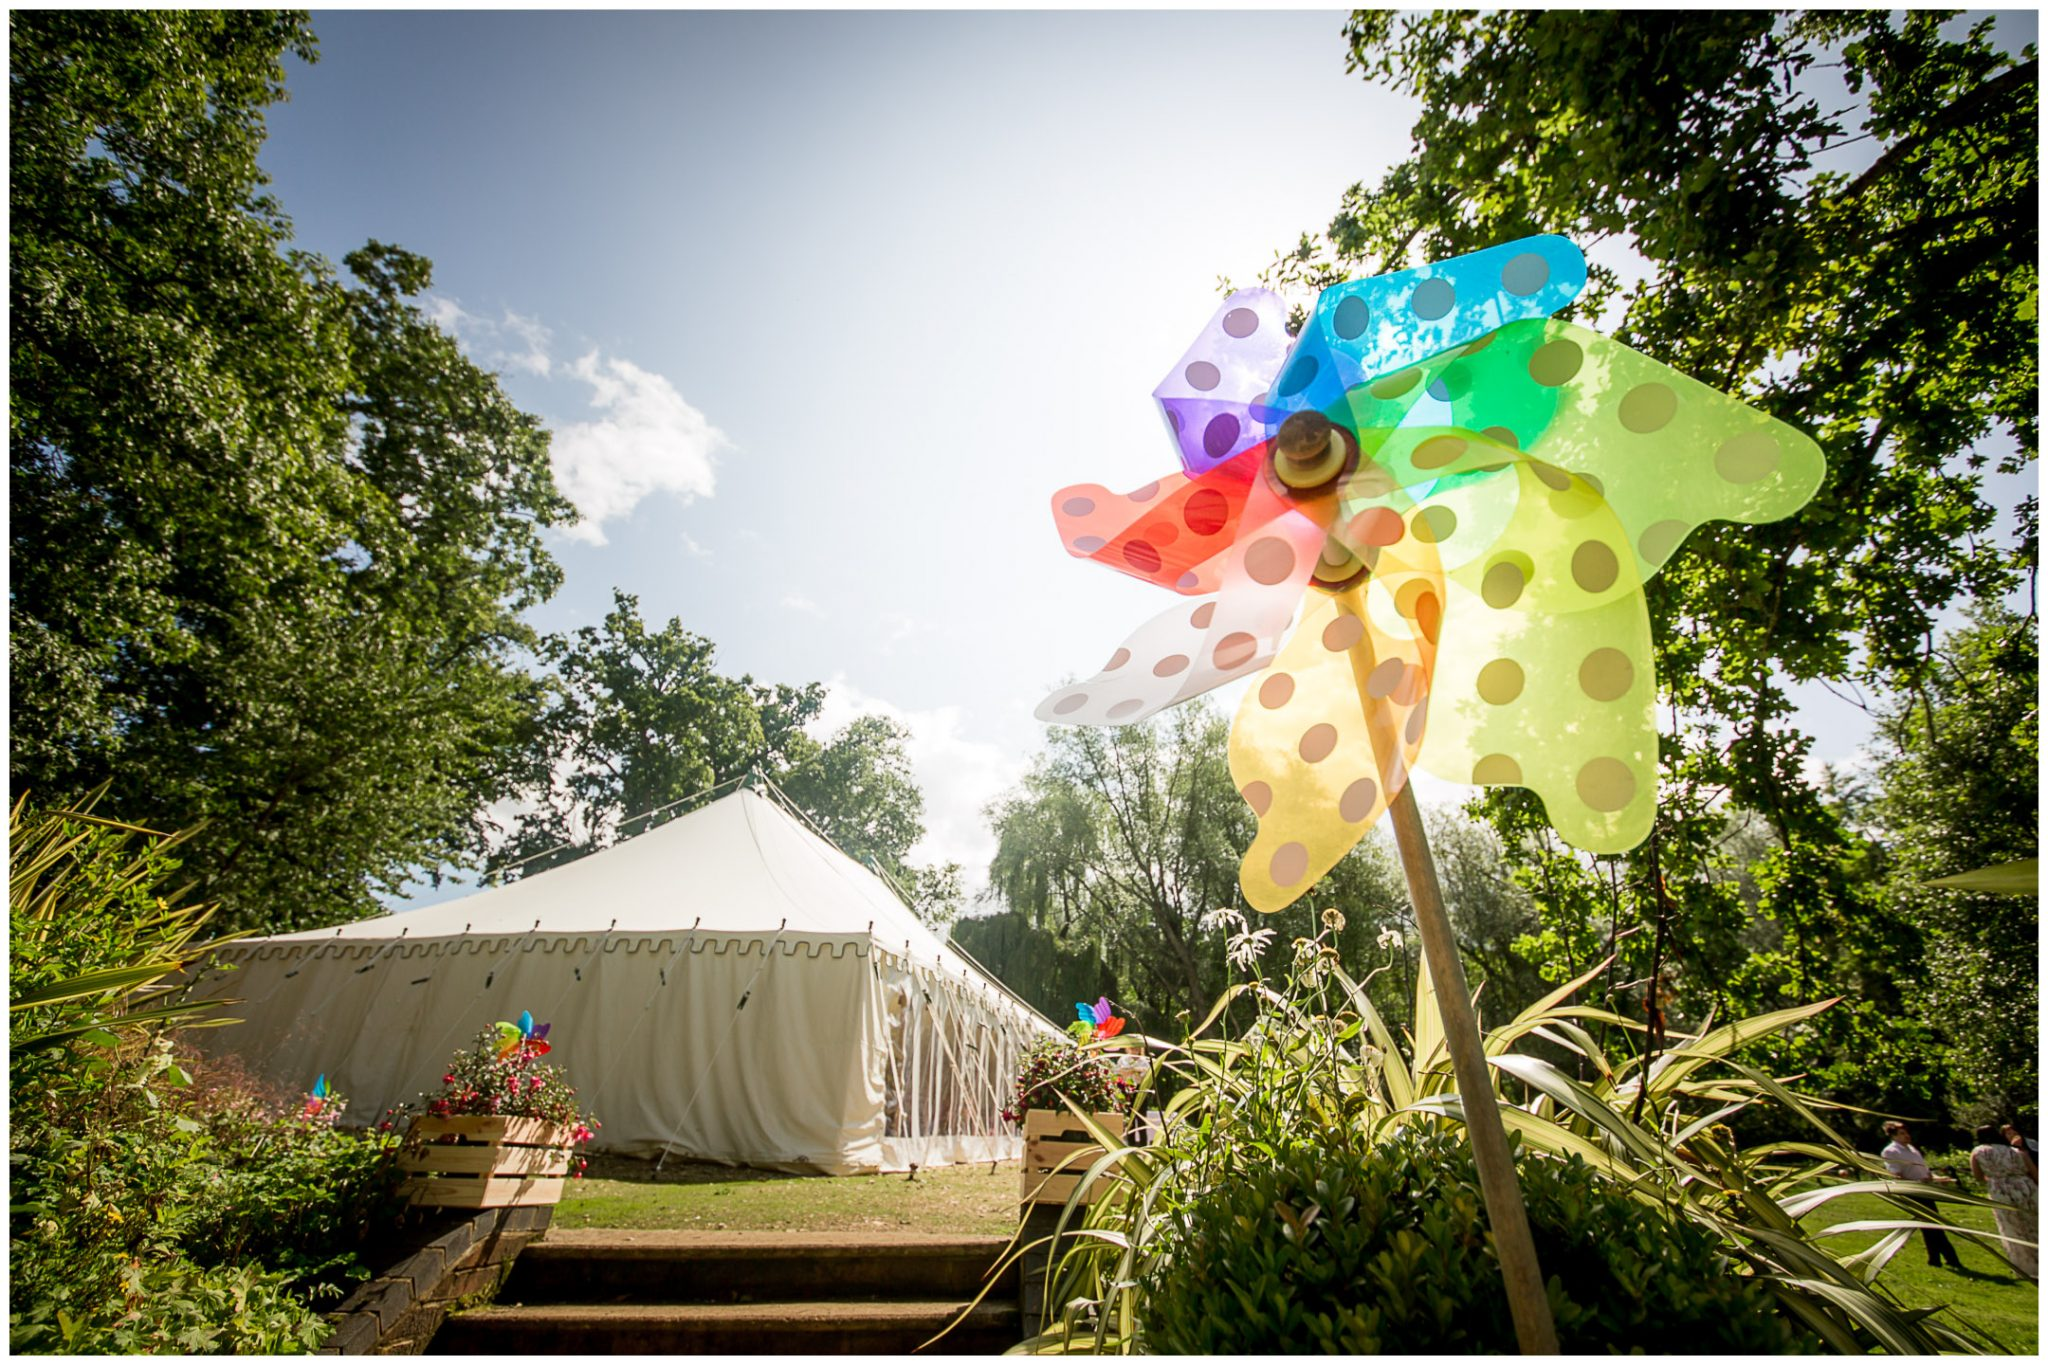 Timsbury Manor Festival Wedding marquee exterior